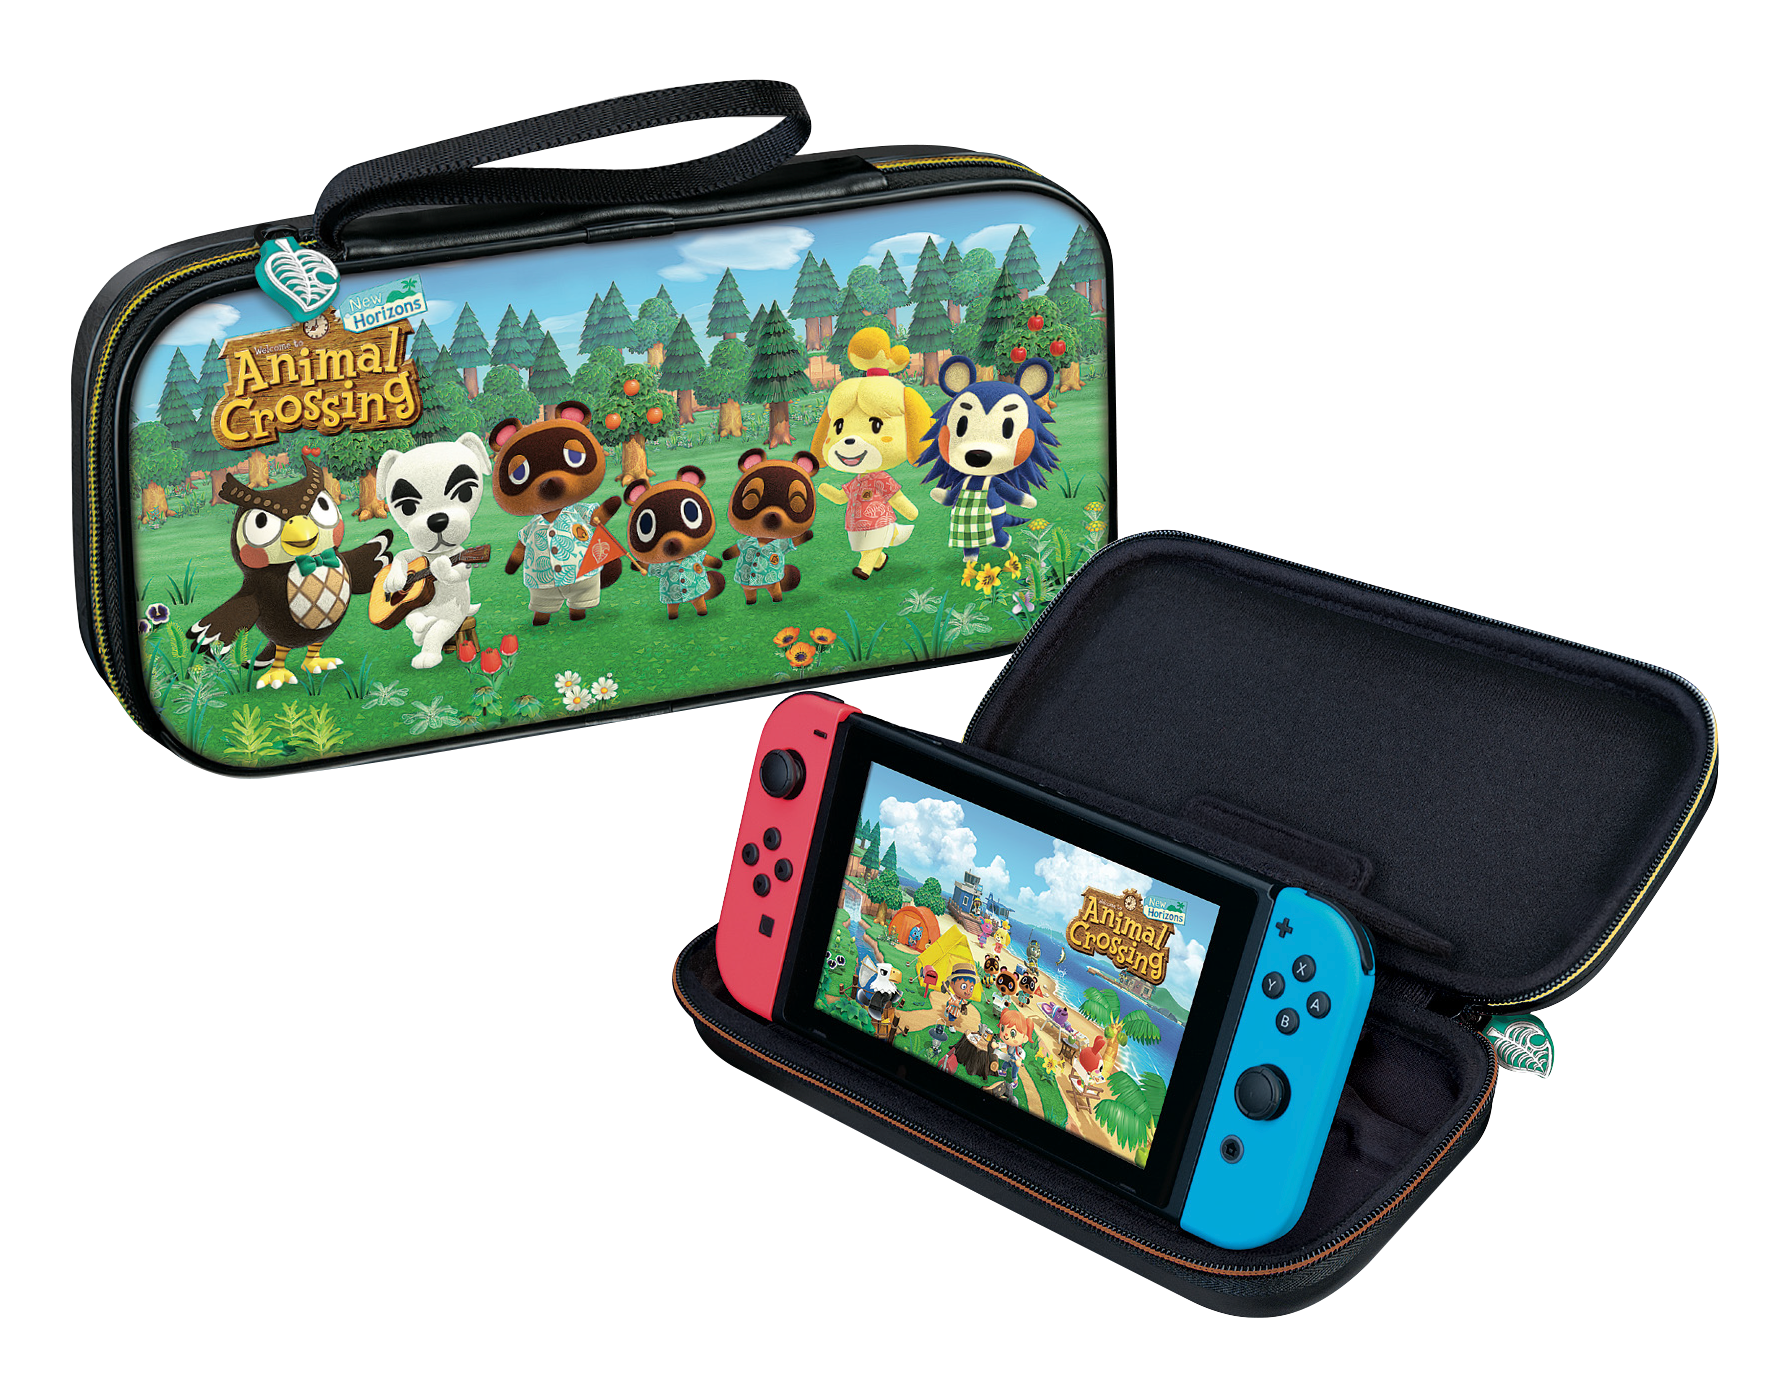 Animal Crossing: New Horizons NACON Carry Case closed and open with Switch standing up